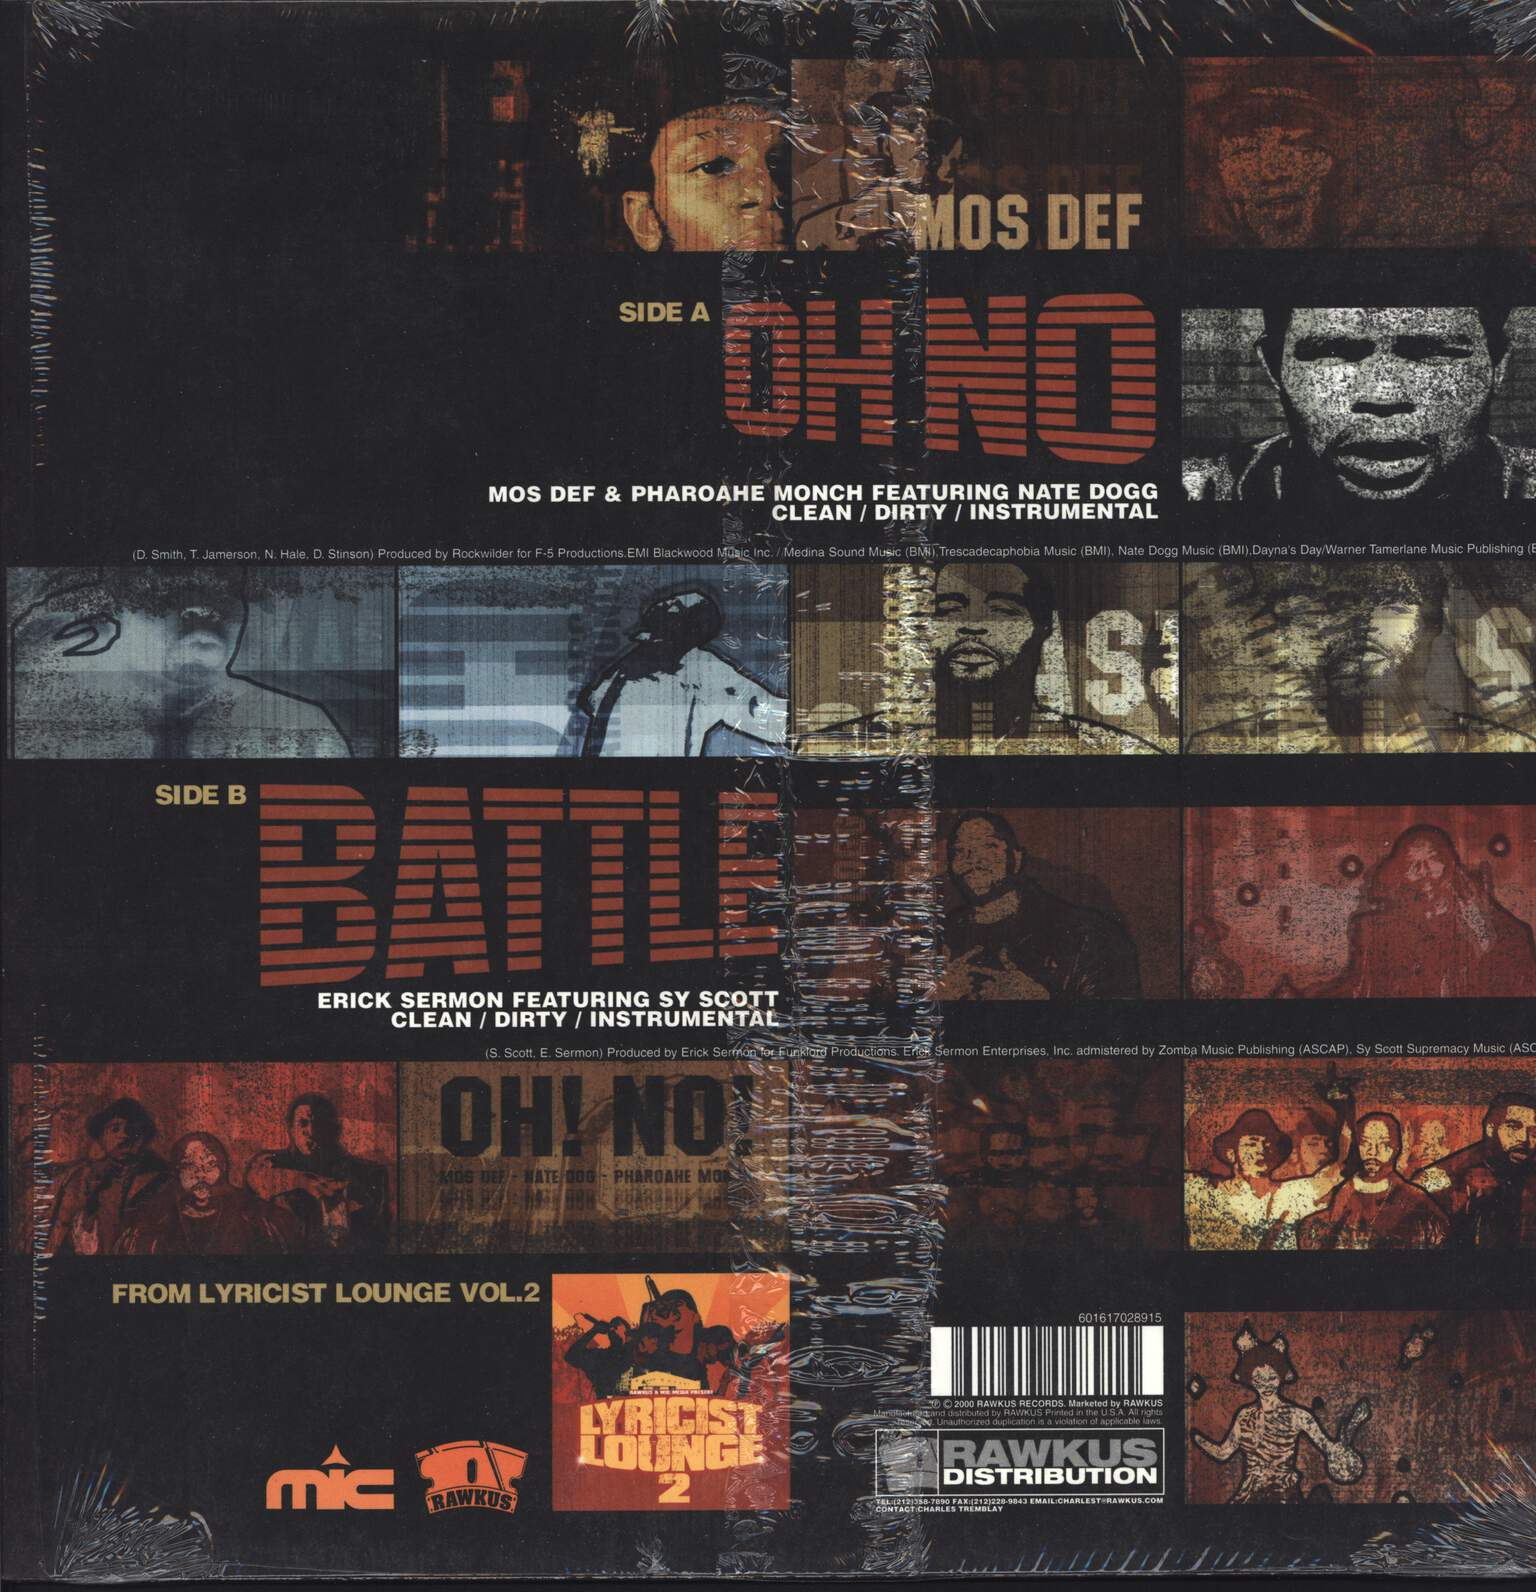 "Mos Def: Oh No / Battle, 12"" Maxi Single (Vinyl)"